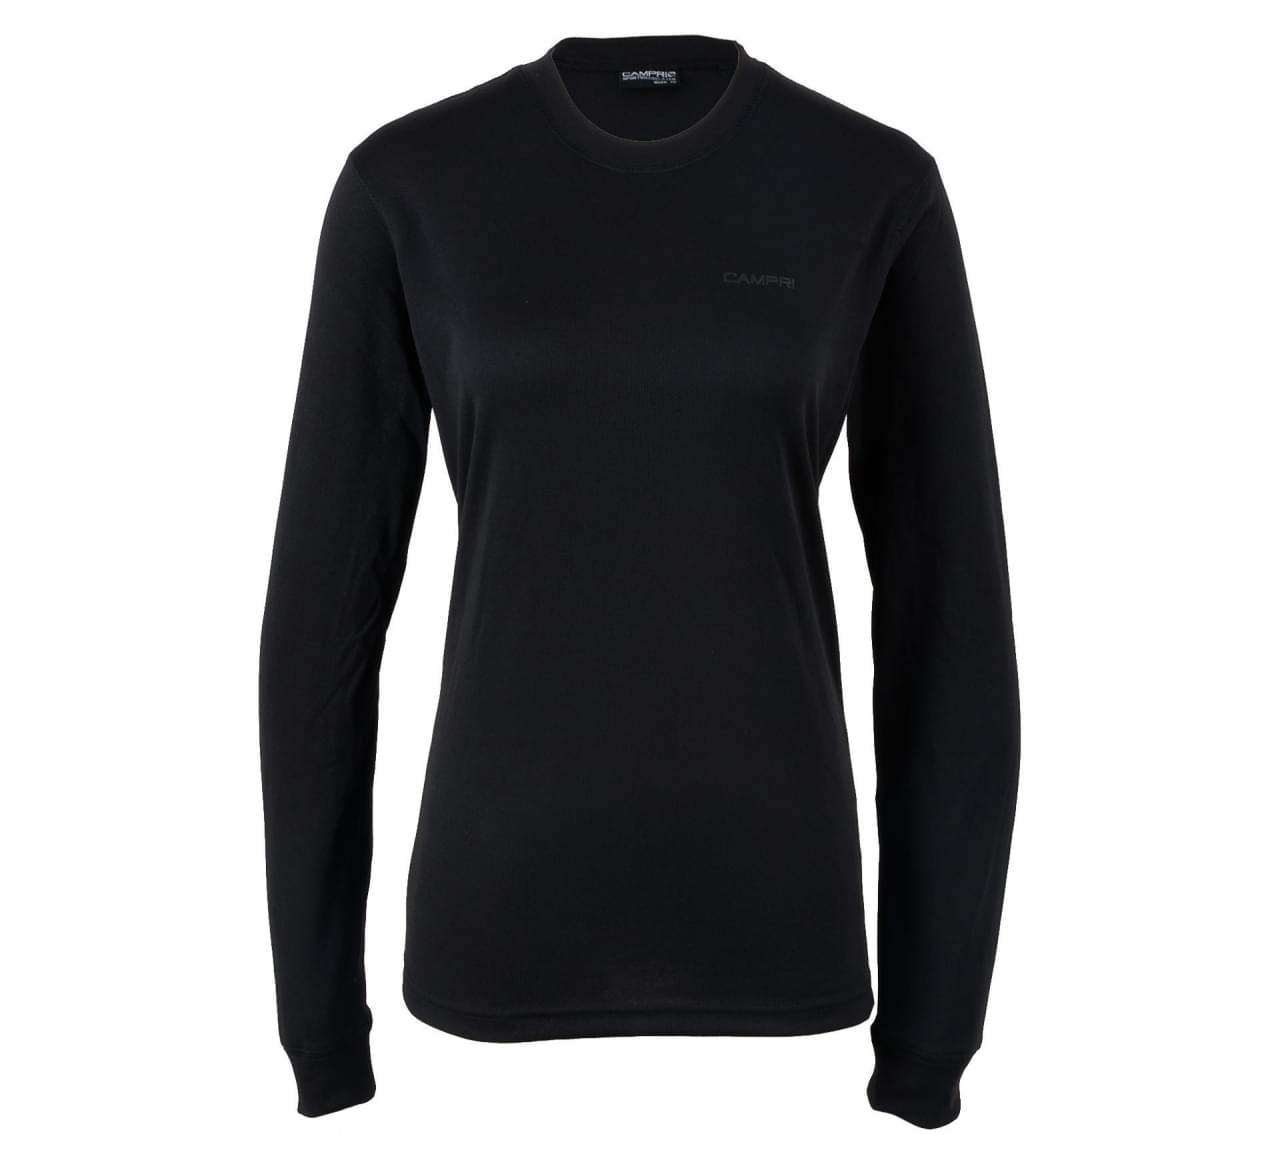 Campri Ladies L/S Thermal Top Black